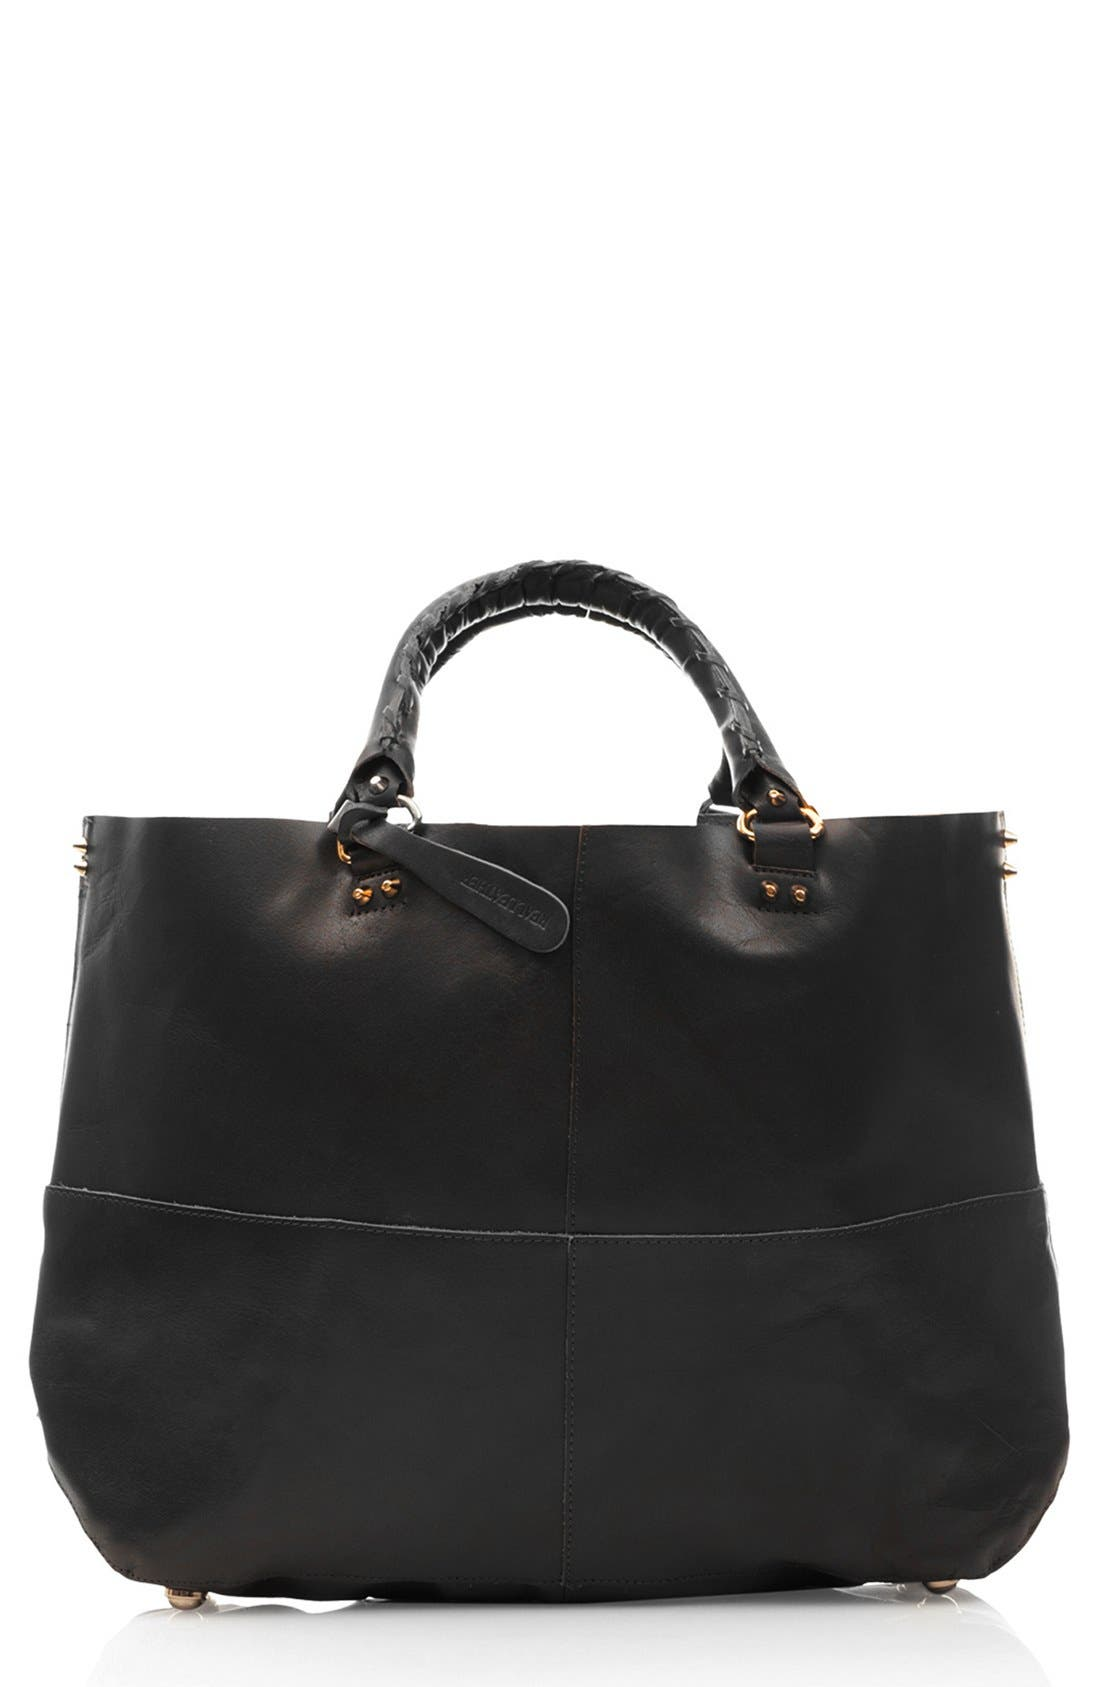 Main Image - Topshop 'Clean' Leather Tote